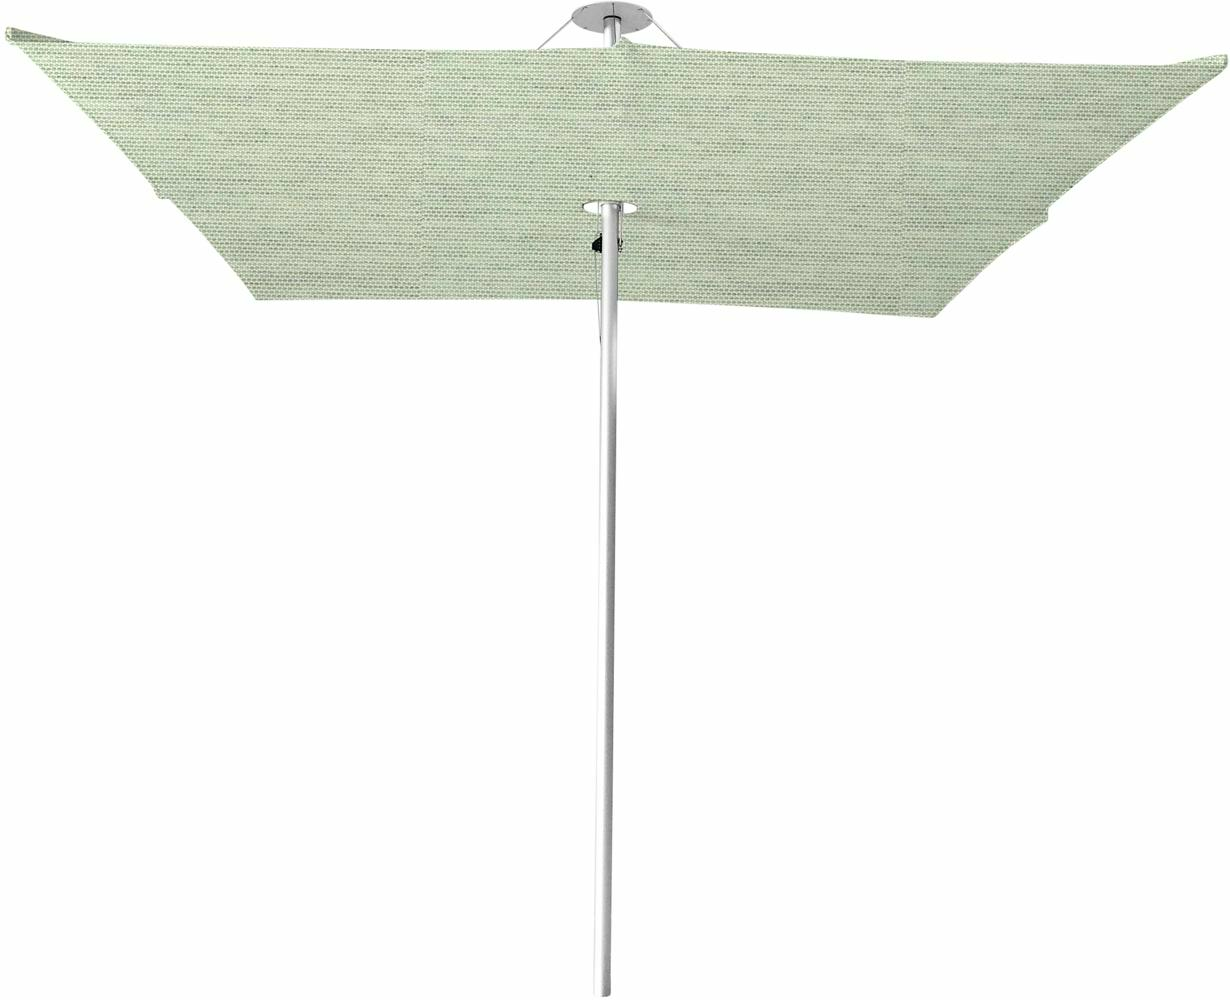 Infina canopy square 3 m in colour Mint